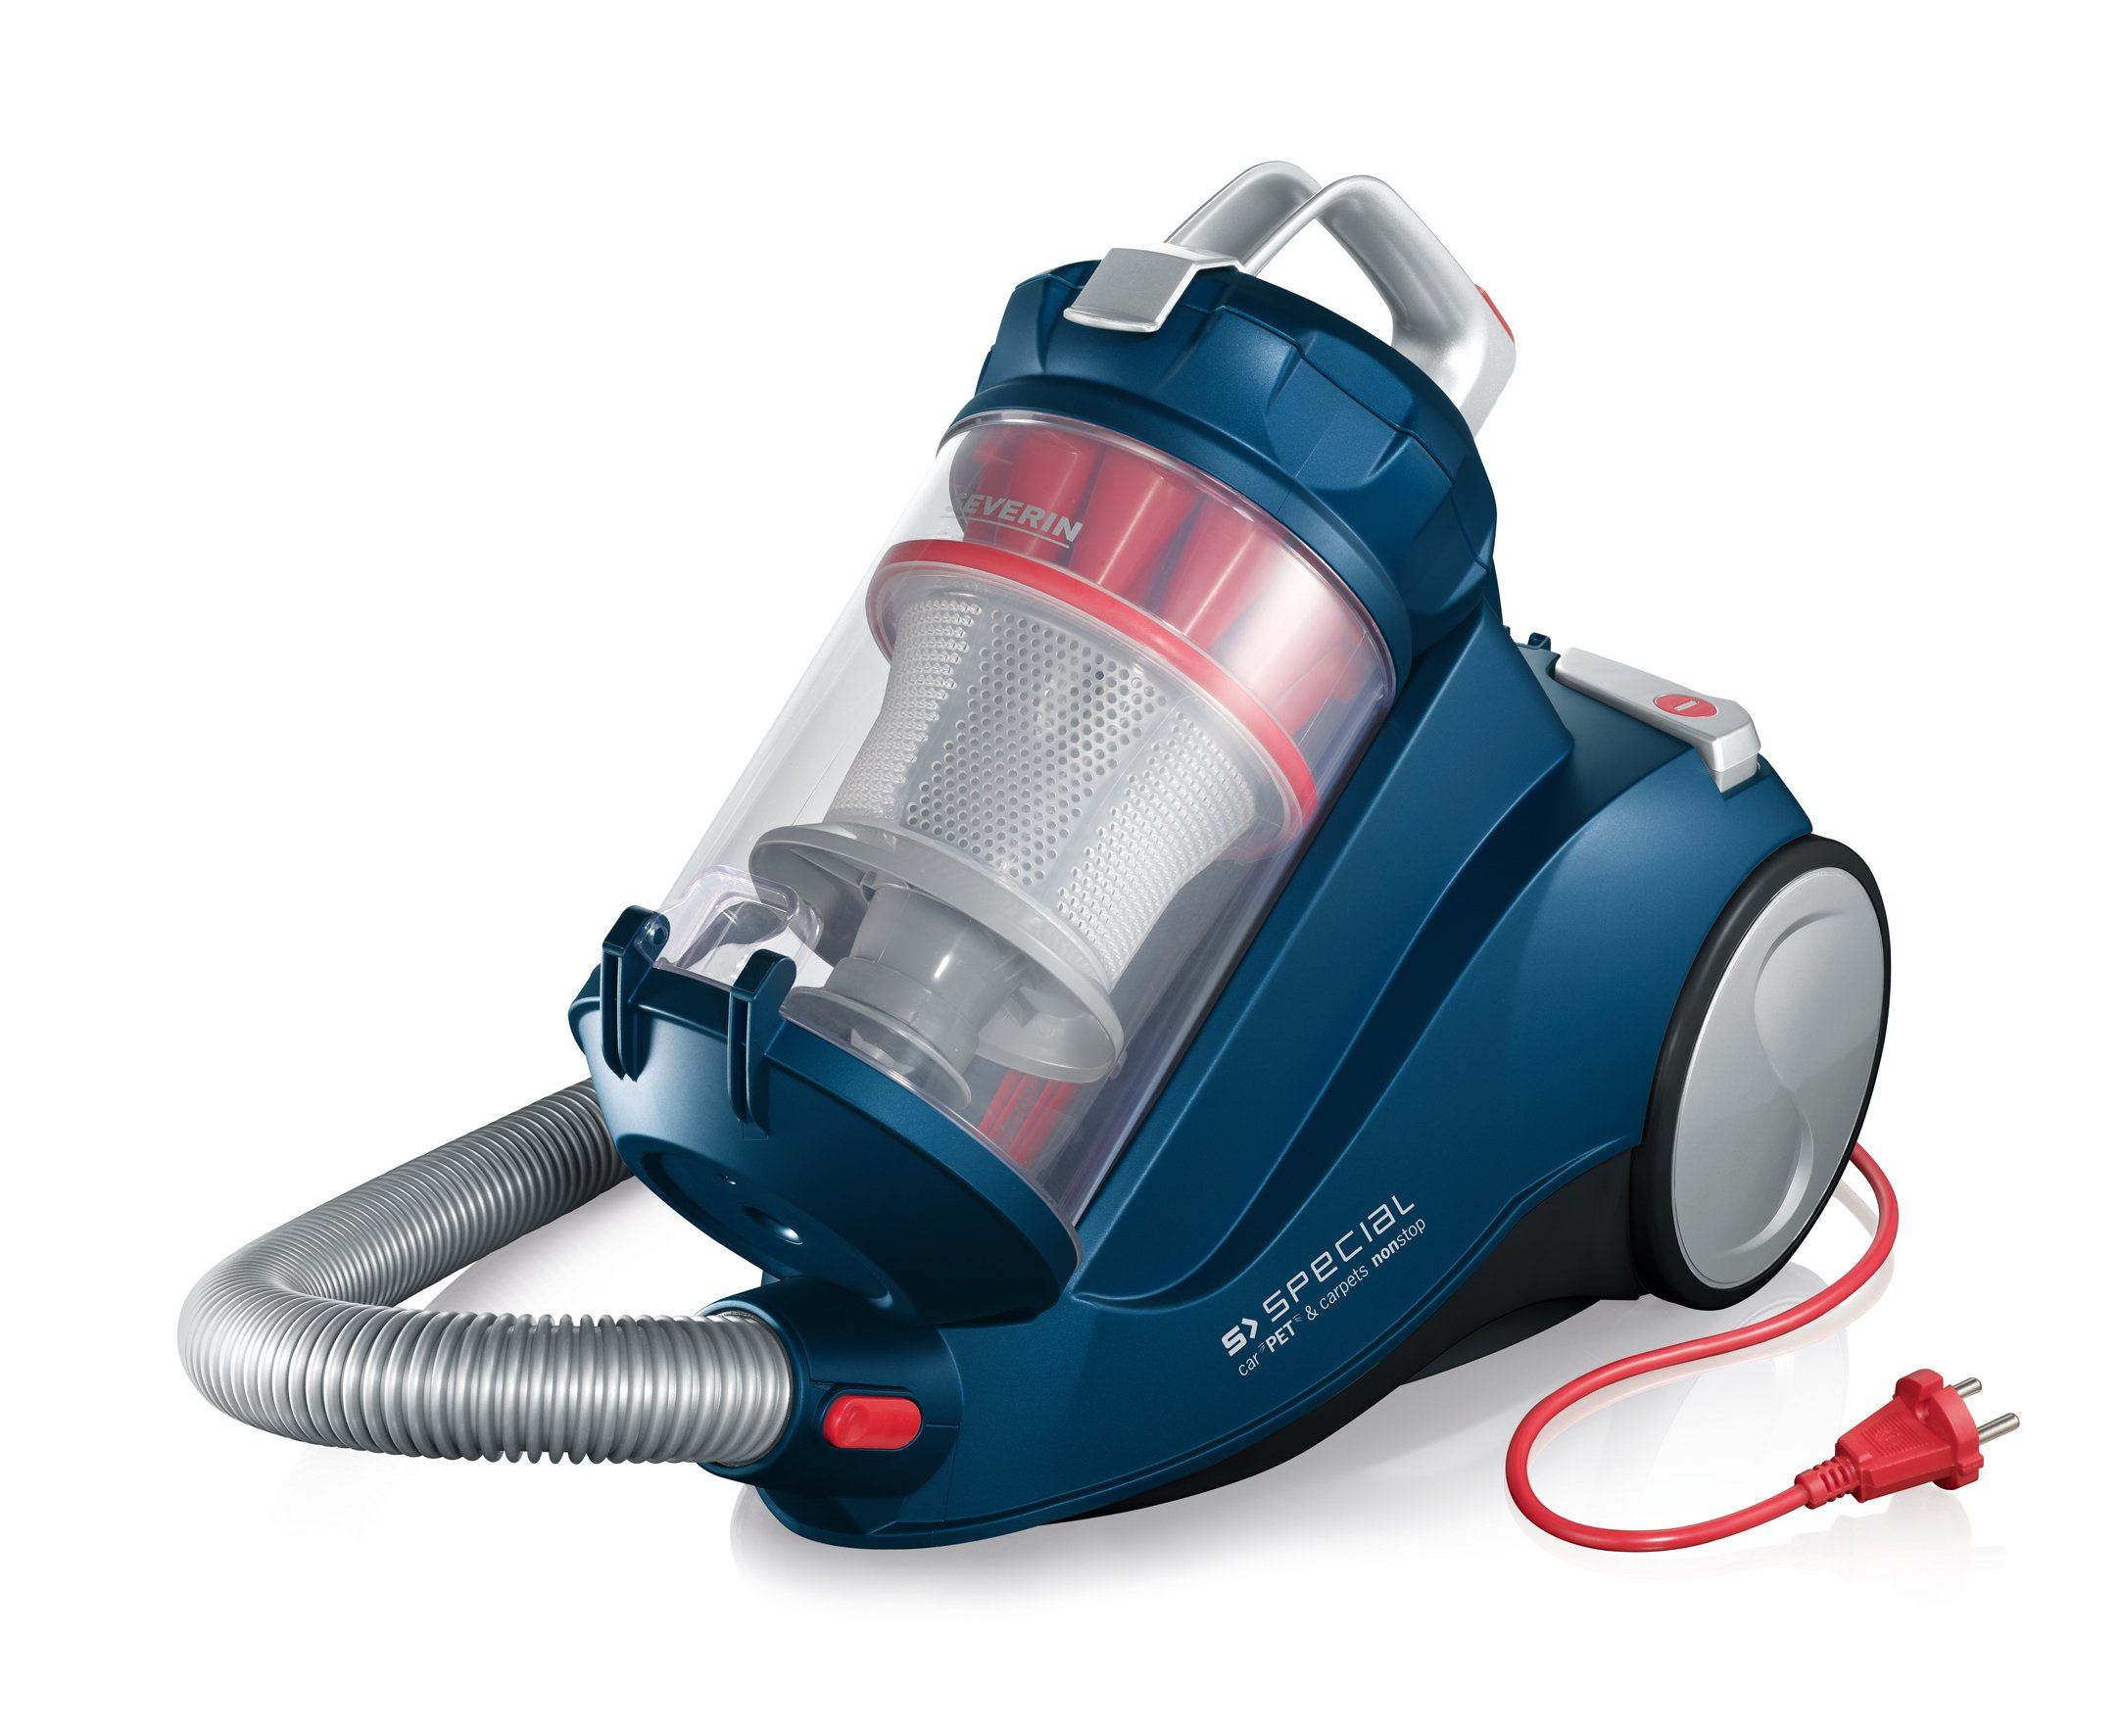 Severin Germany Special Bagless Vacuum Cleaner, Corded (Ocean Blue) by Severin